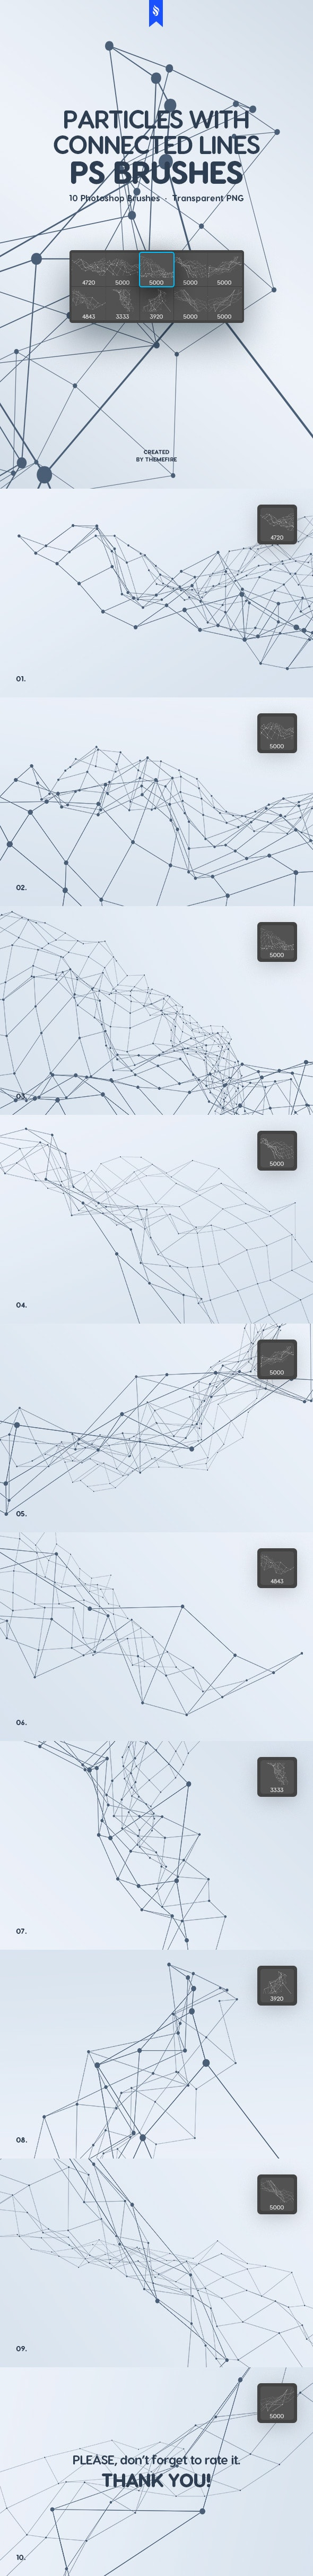 Particles with Connected Lines Photoshop Brushes - Techno / Futuristic Brushes